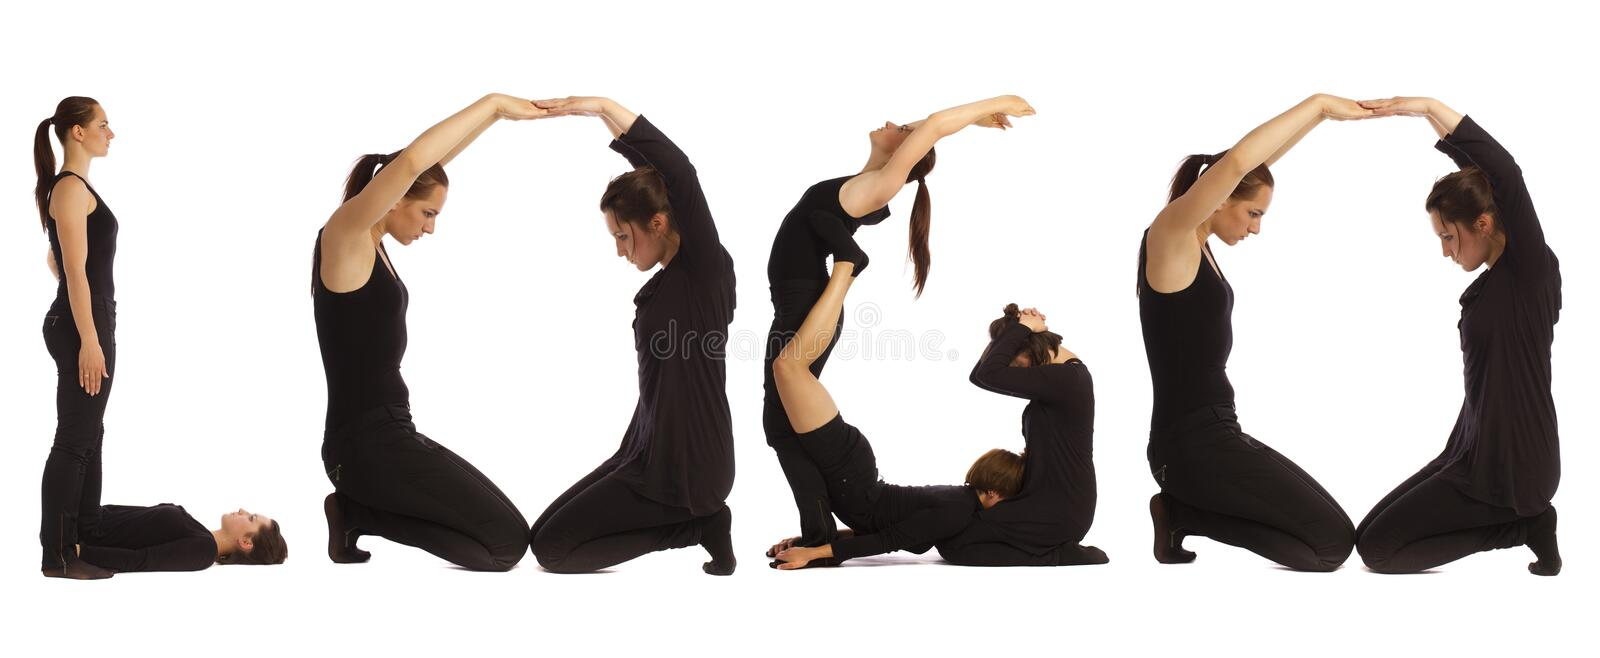 Black dressed people forming LOGO word. Over white royalty free stock photos